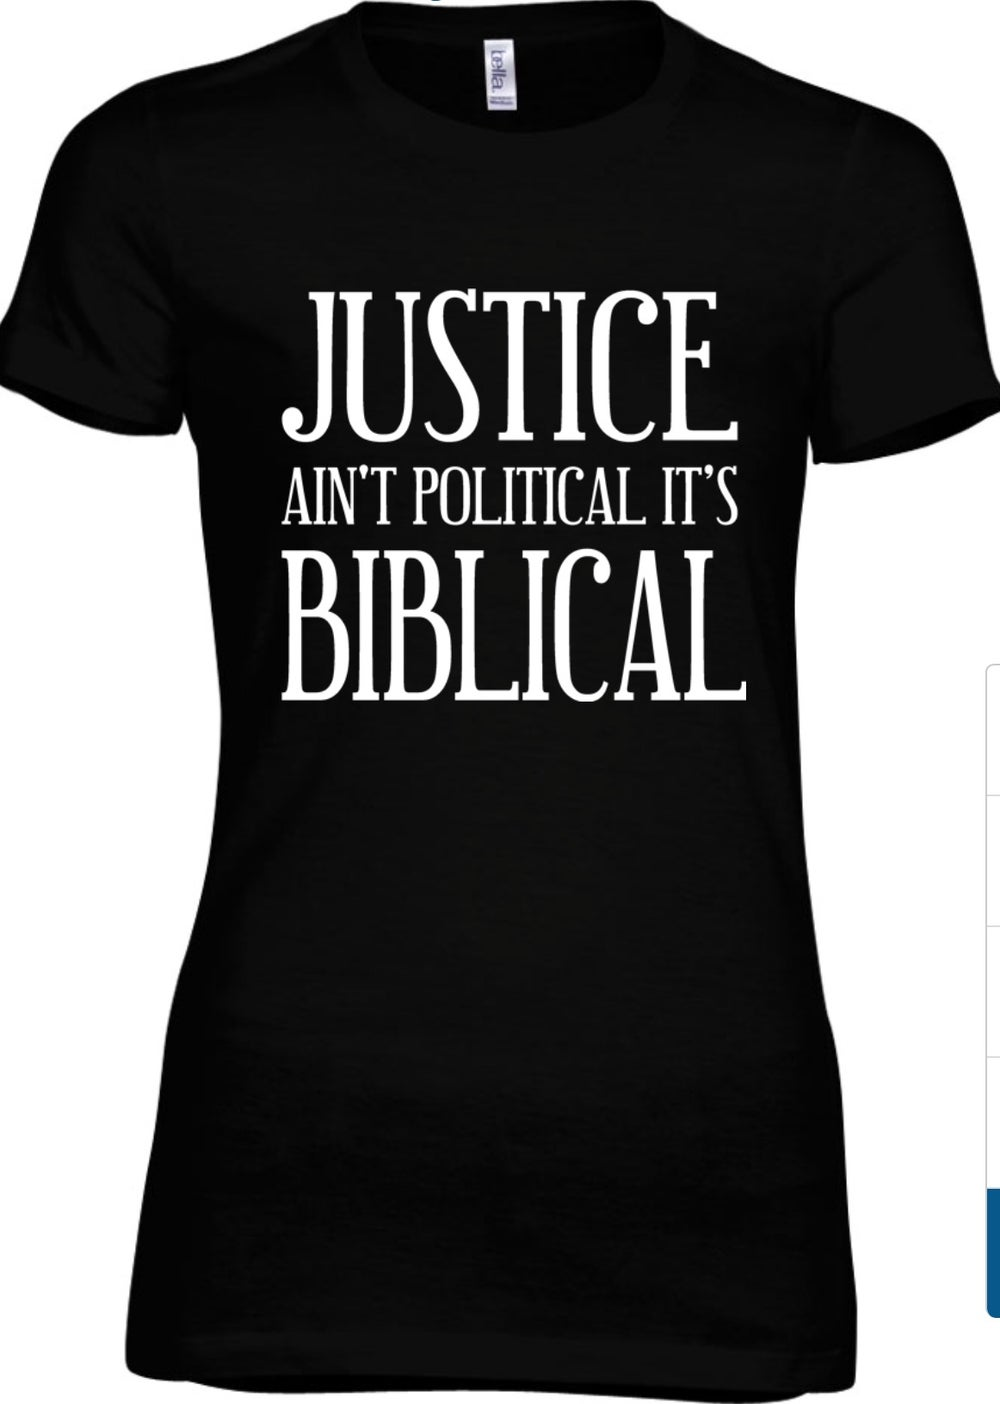 Image of WOMEN'S JUSTICE AIN'T POLITICAL IT'S BIBLICAL PLEASE ALLOW UP TO 14-16 BUSINESS DAYS TO RECEIVE